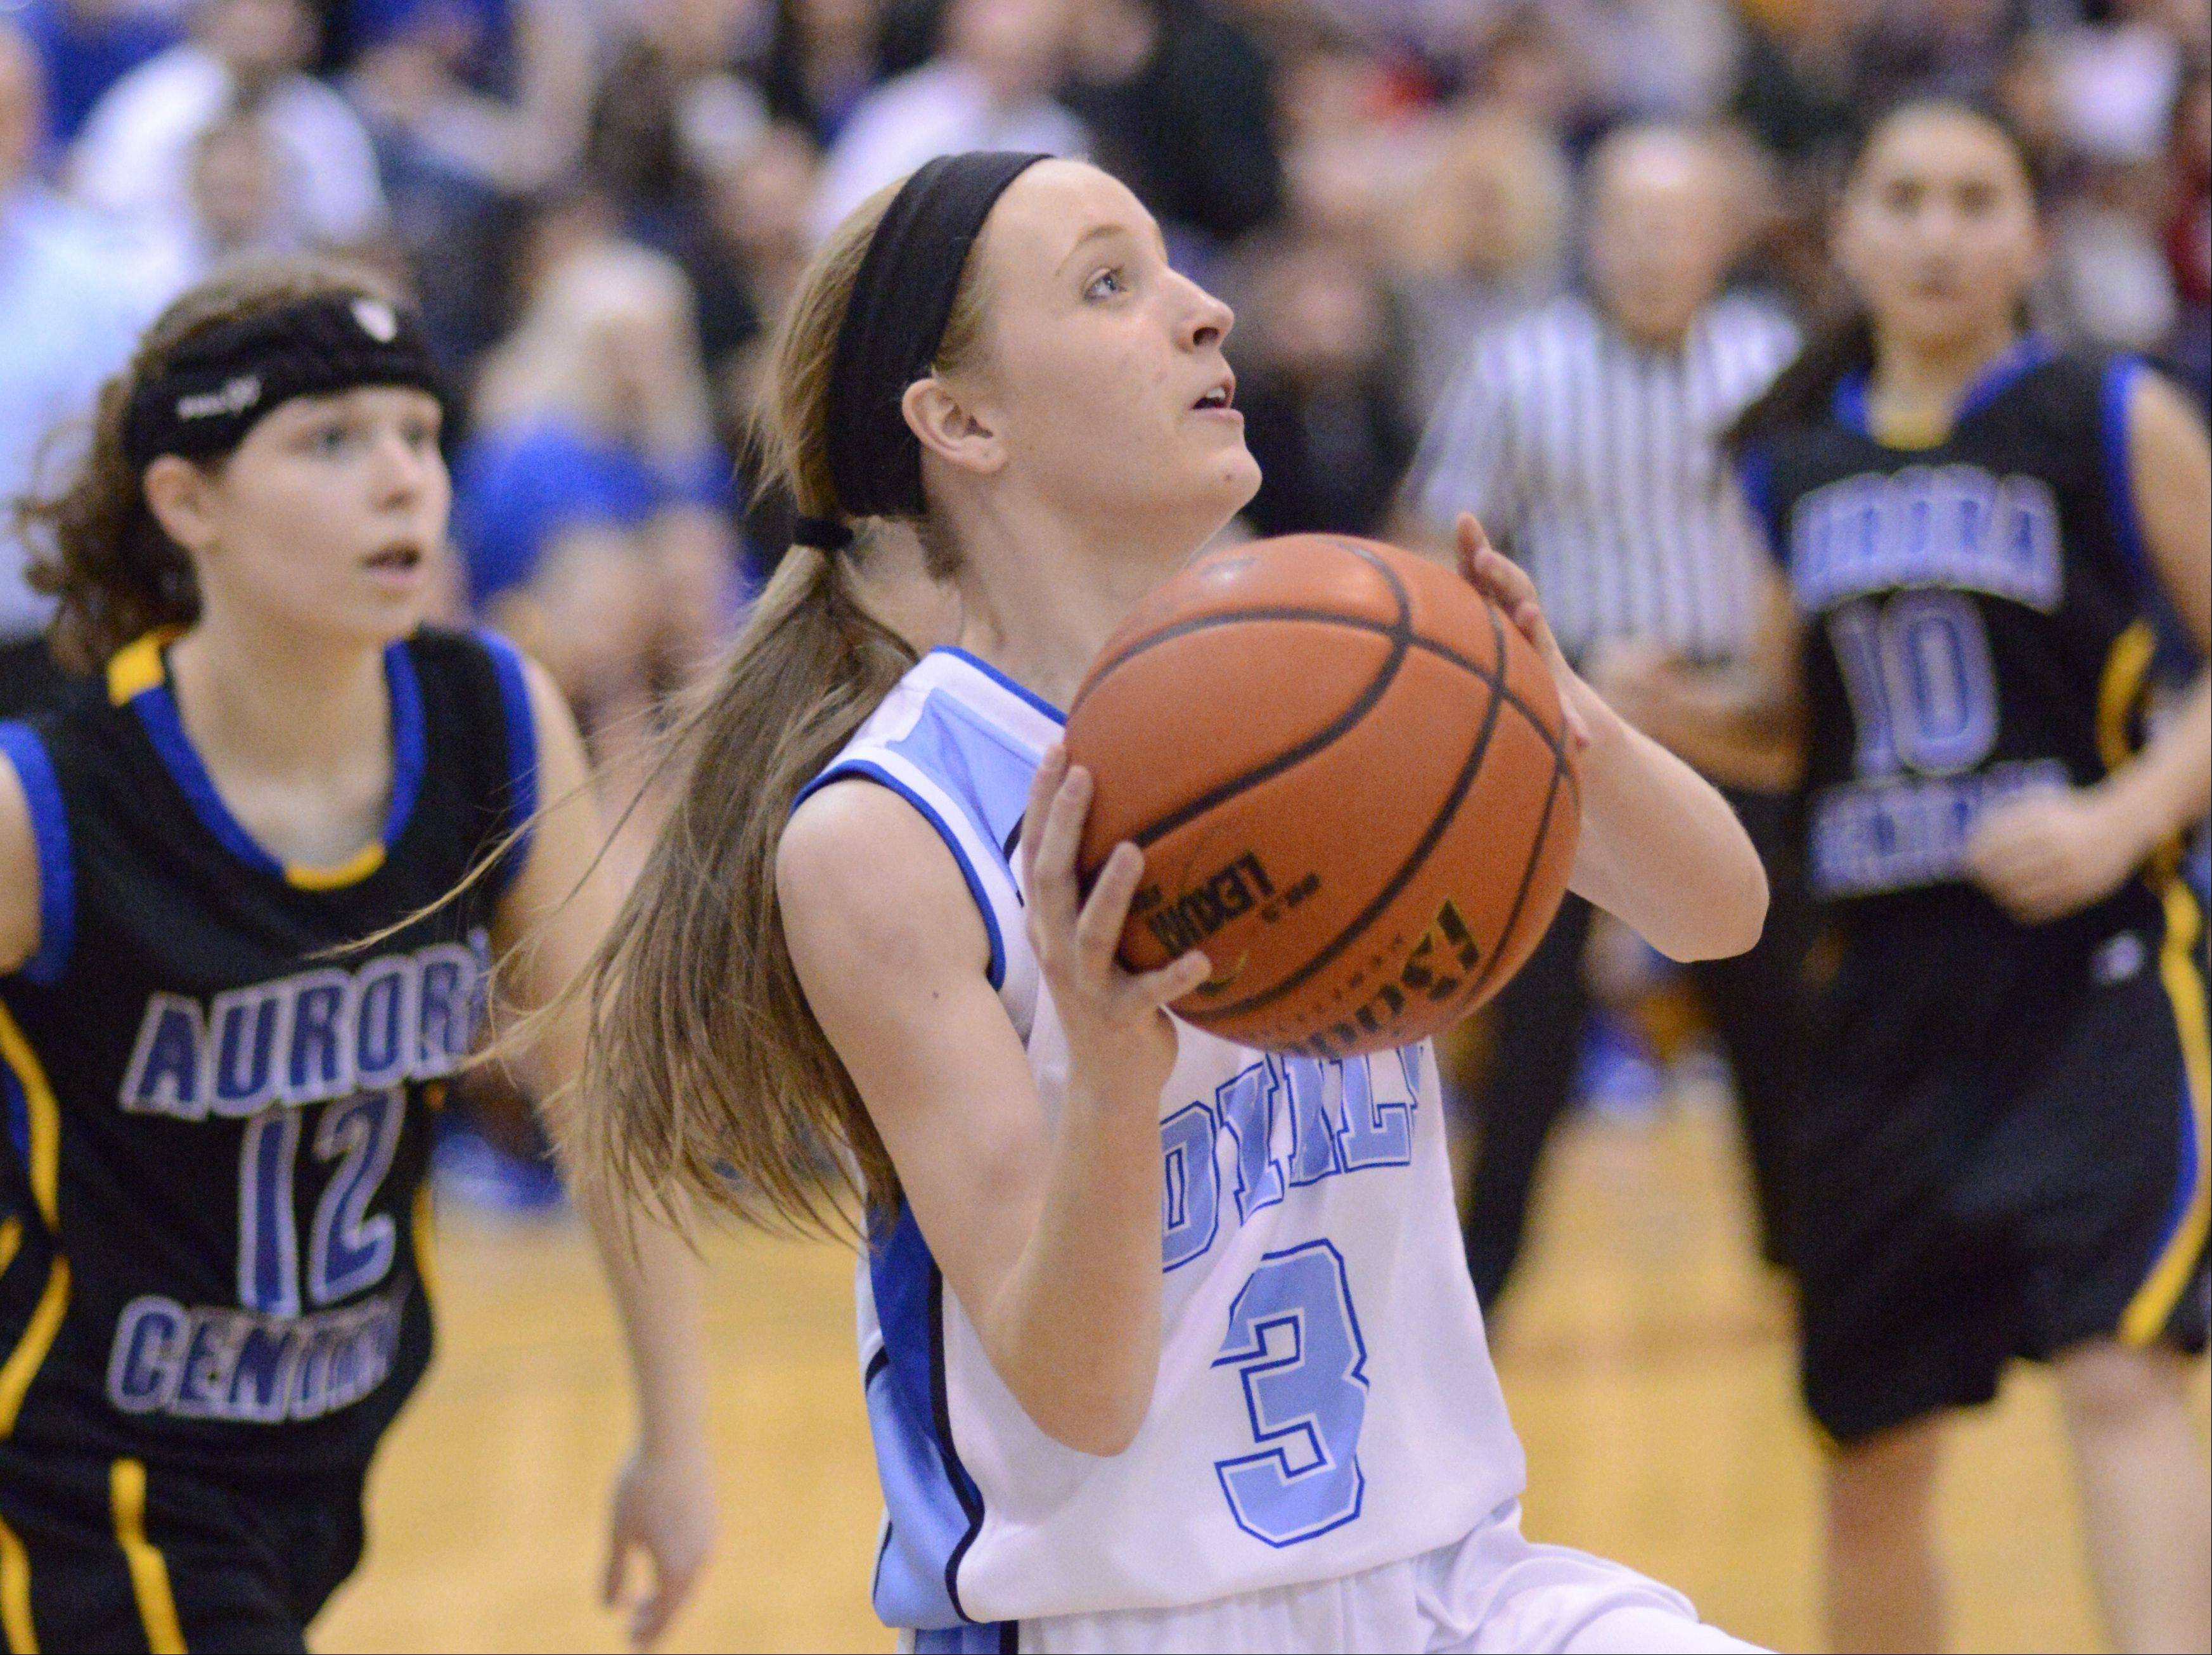 Images: Aurora Central Catholic vs. Rosary, girls basketball